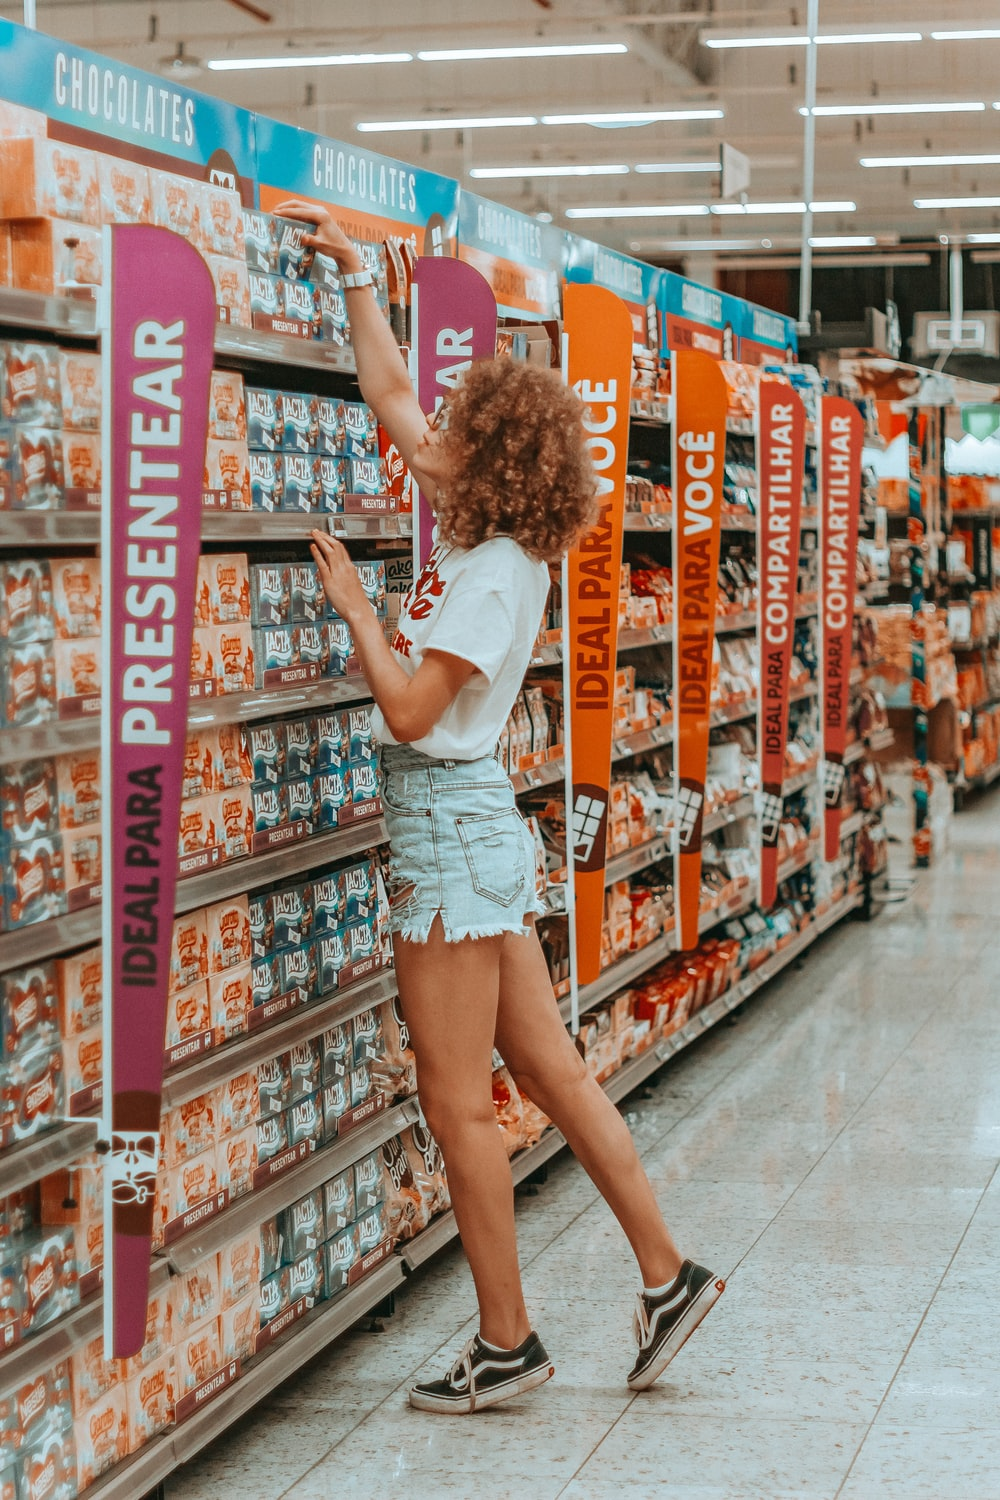 woman getting box of chocolate inside grocery